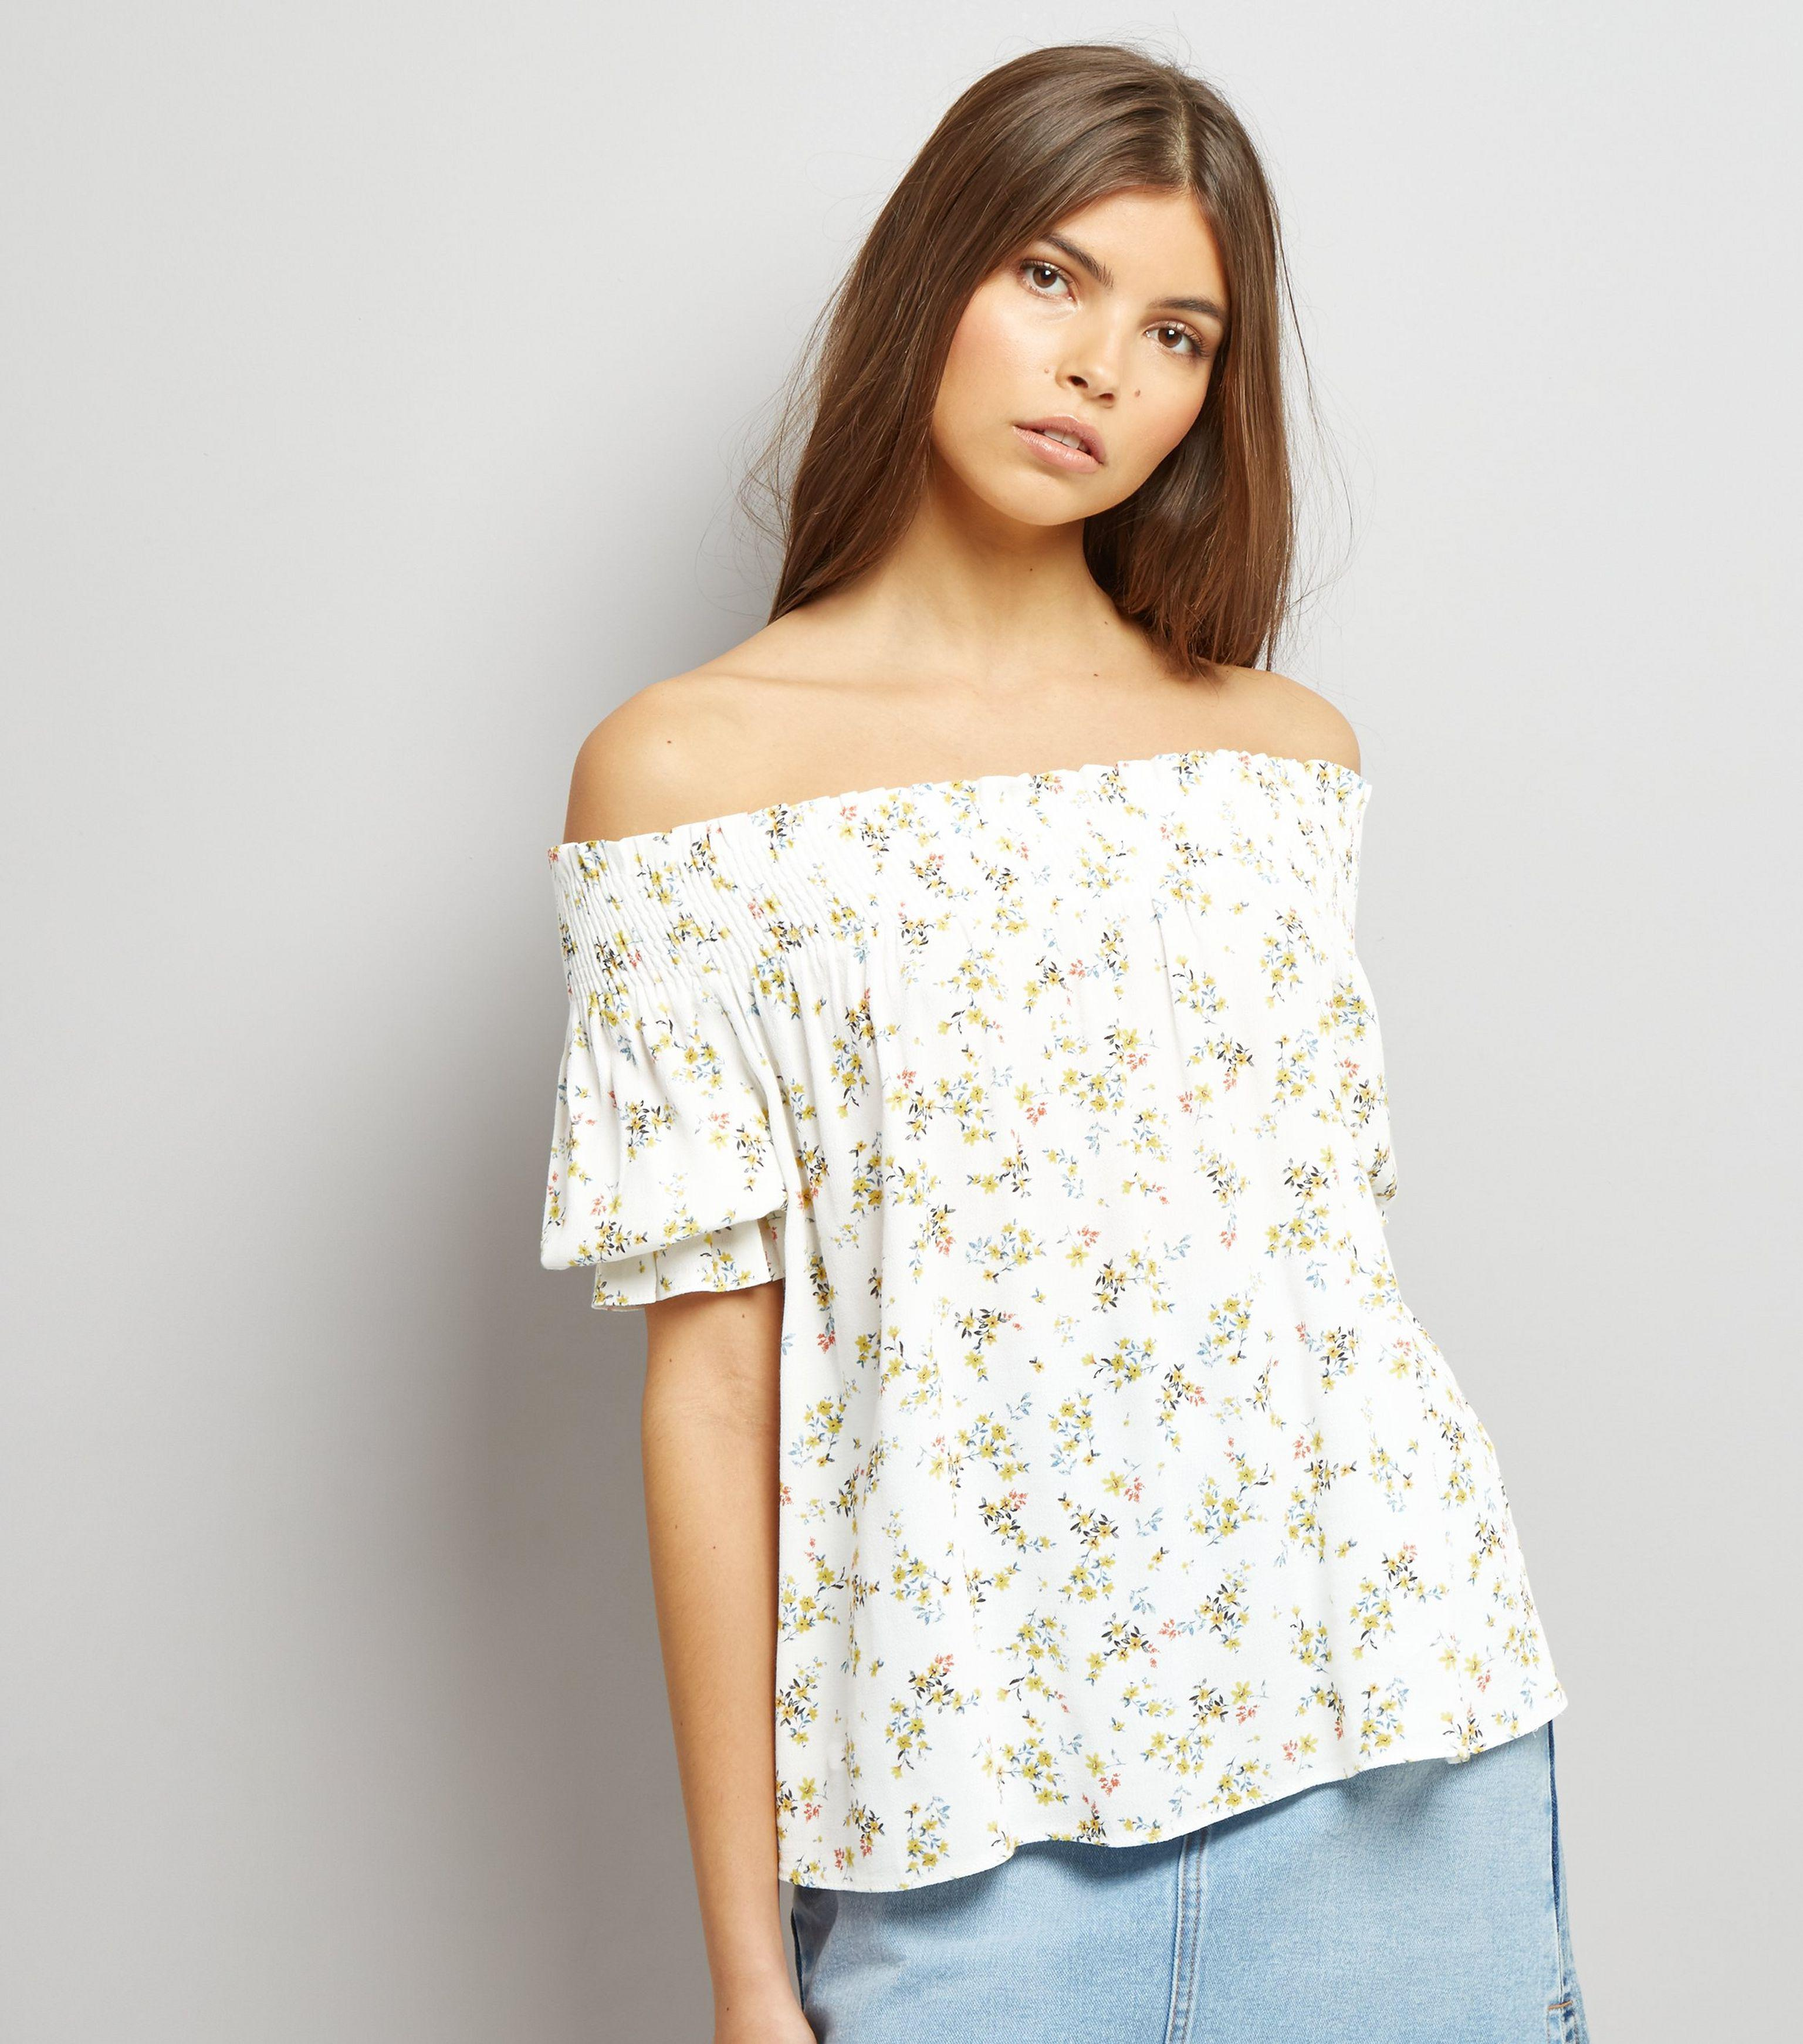 00a6a1d7b9f84b New Look White Floral Print Shirred Bardot Top in White - Lyst